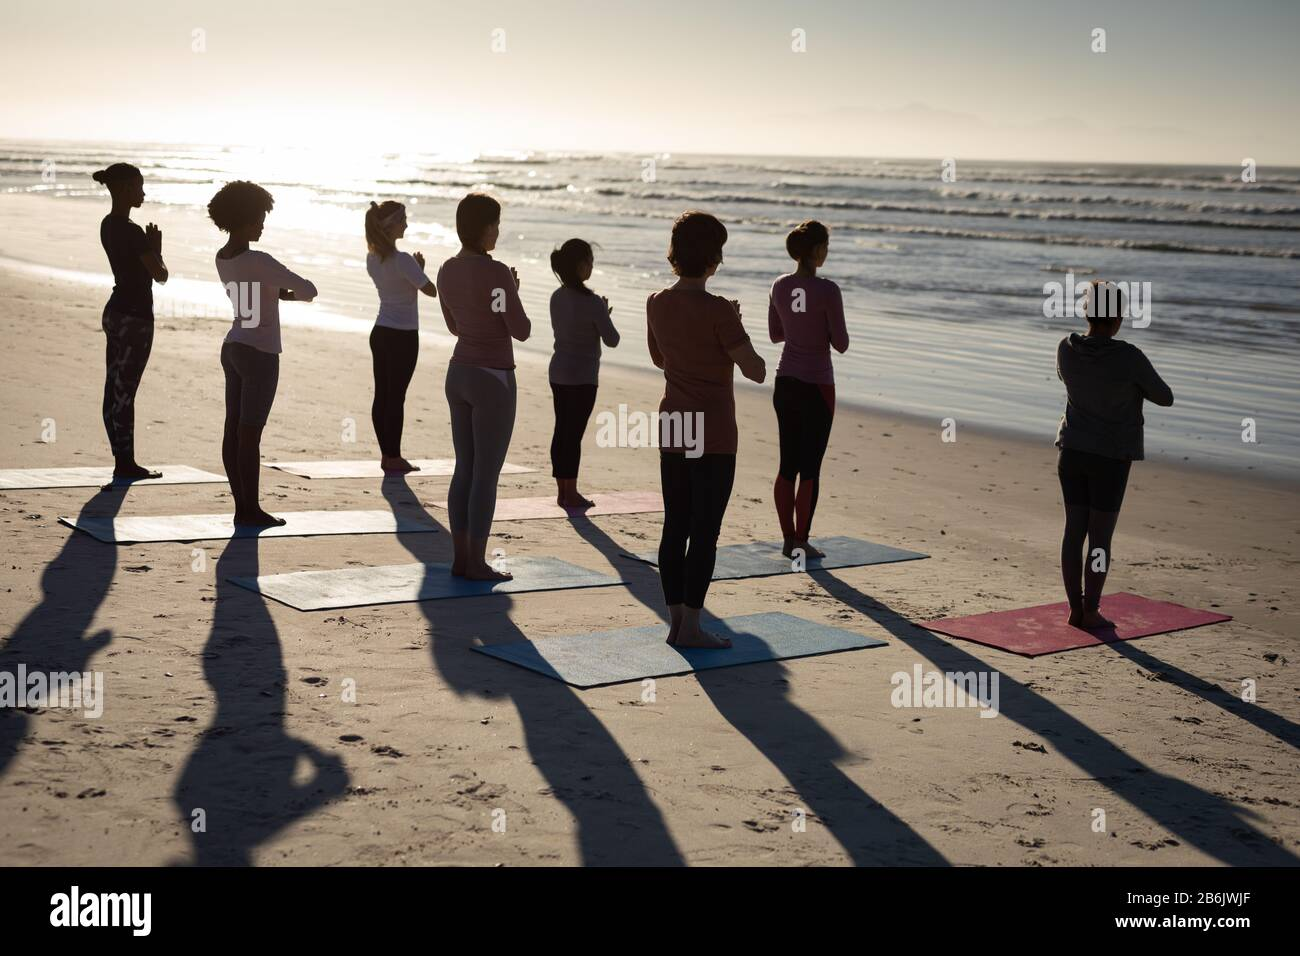 Rear view of women standing on yoga mats at the beach Stock Photo